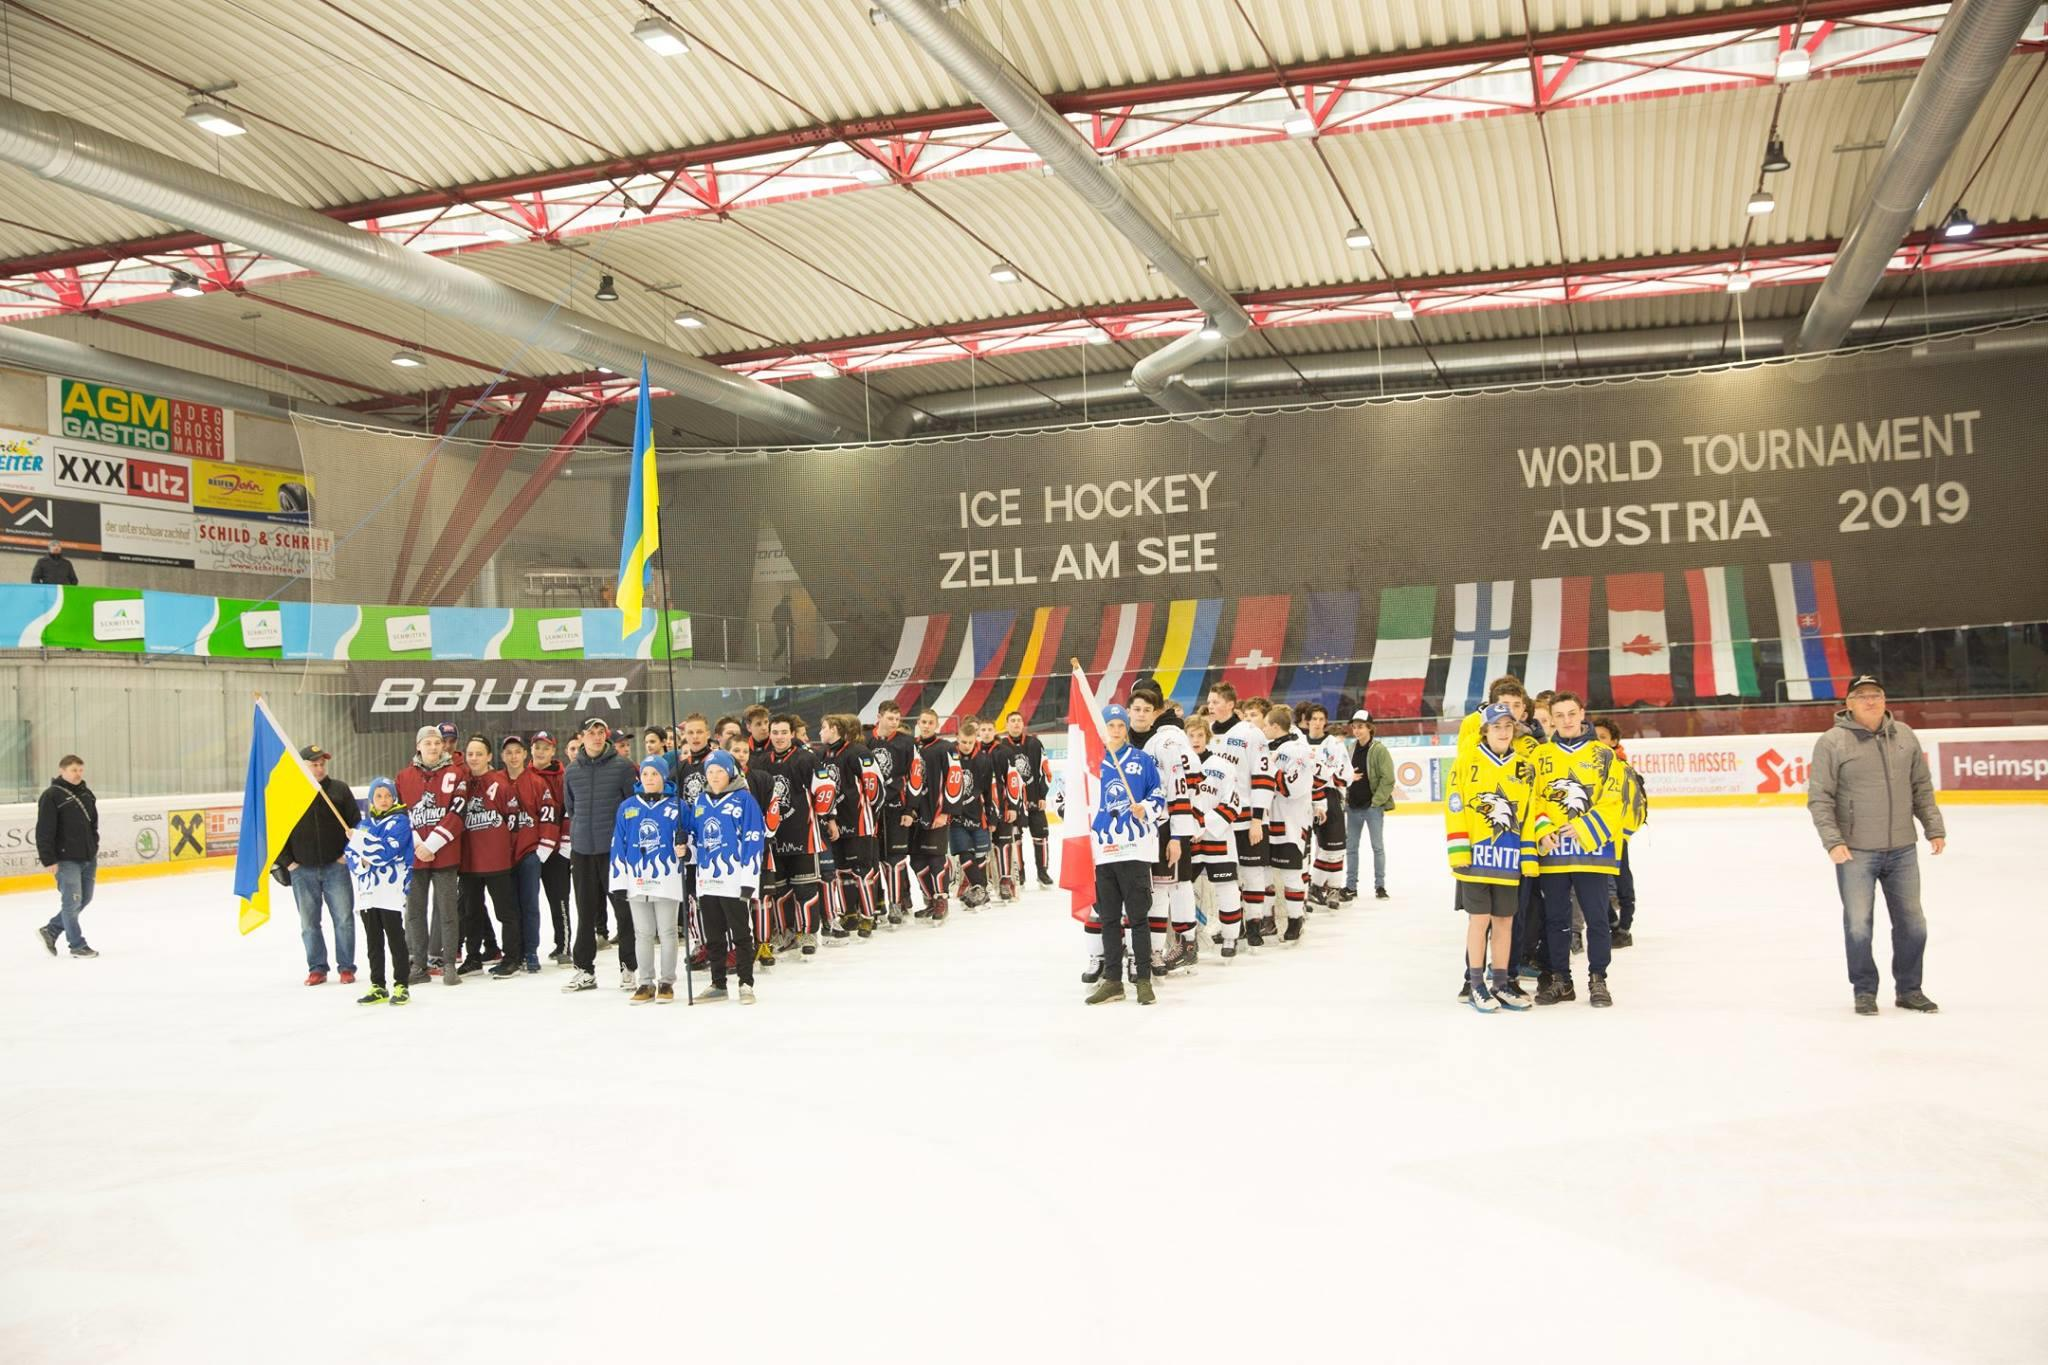 Eishockey World Tournament 2020 - 15.04.2020